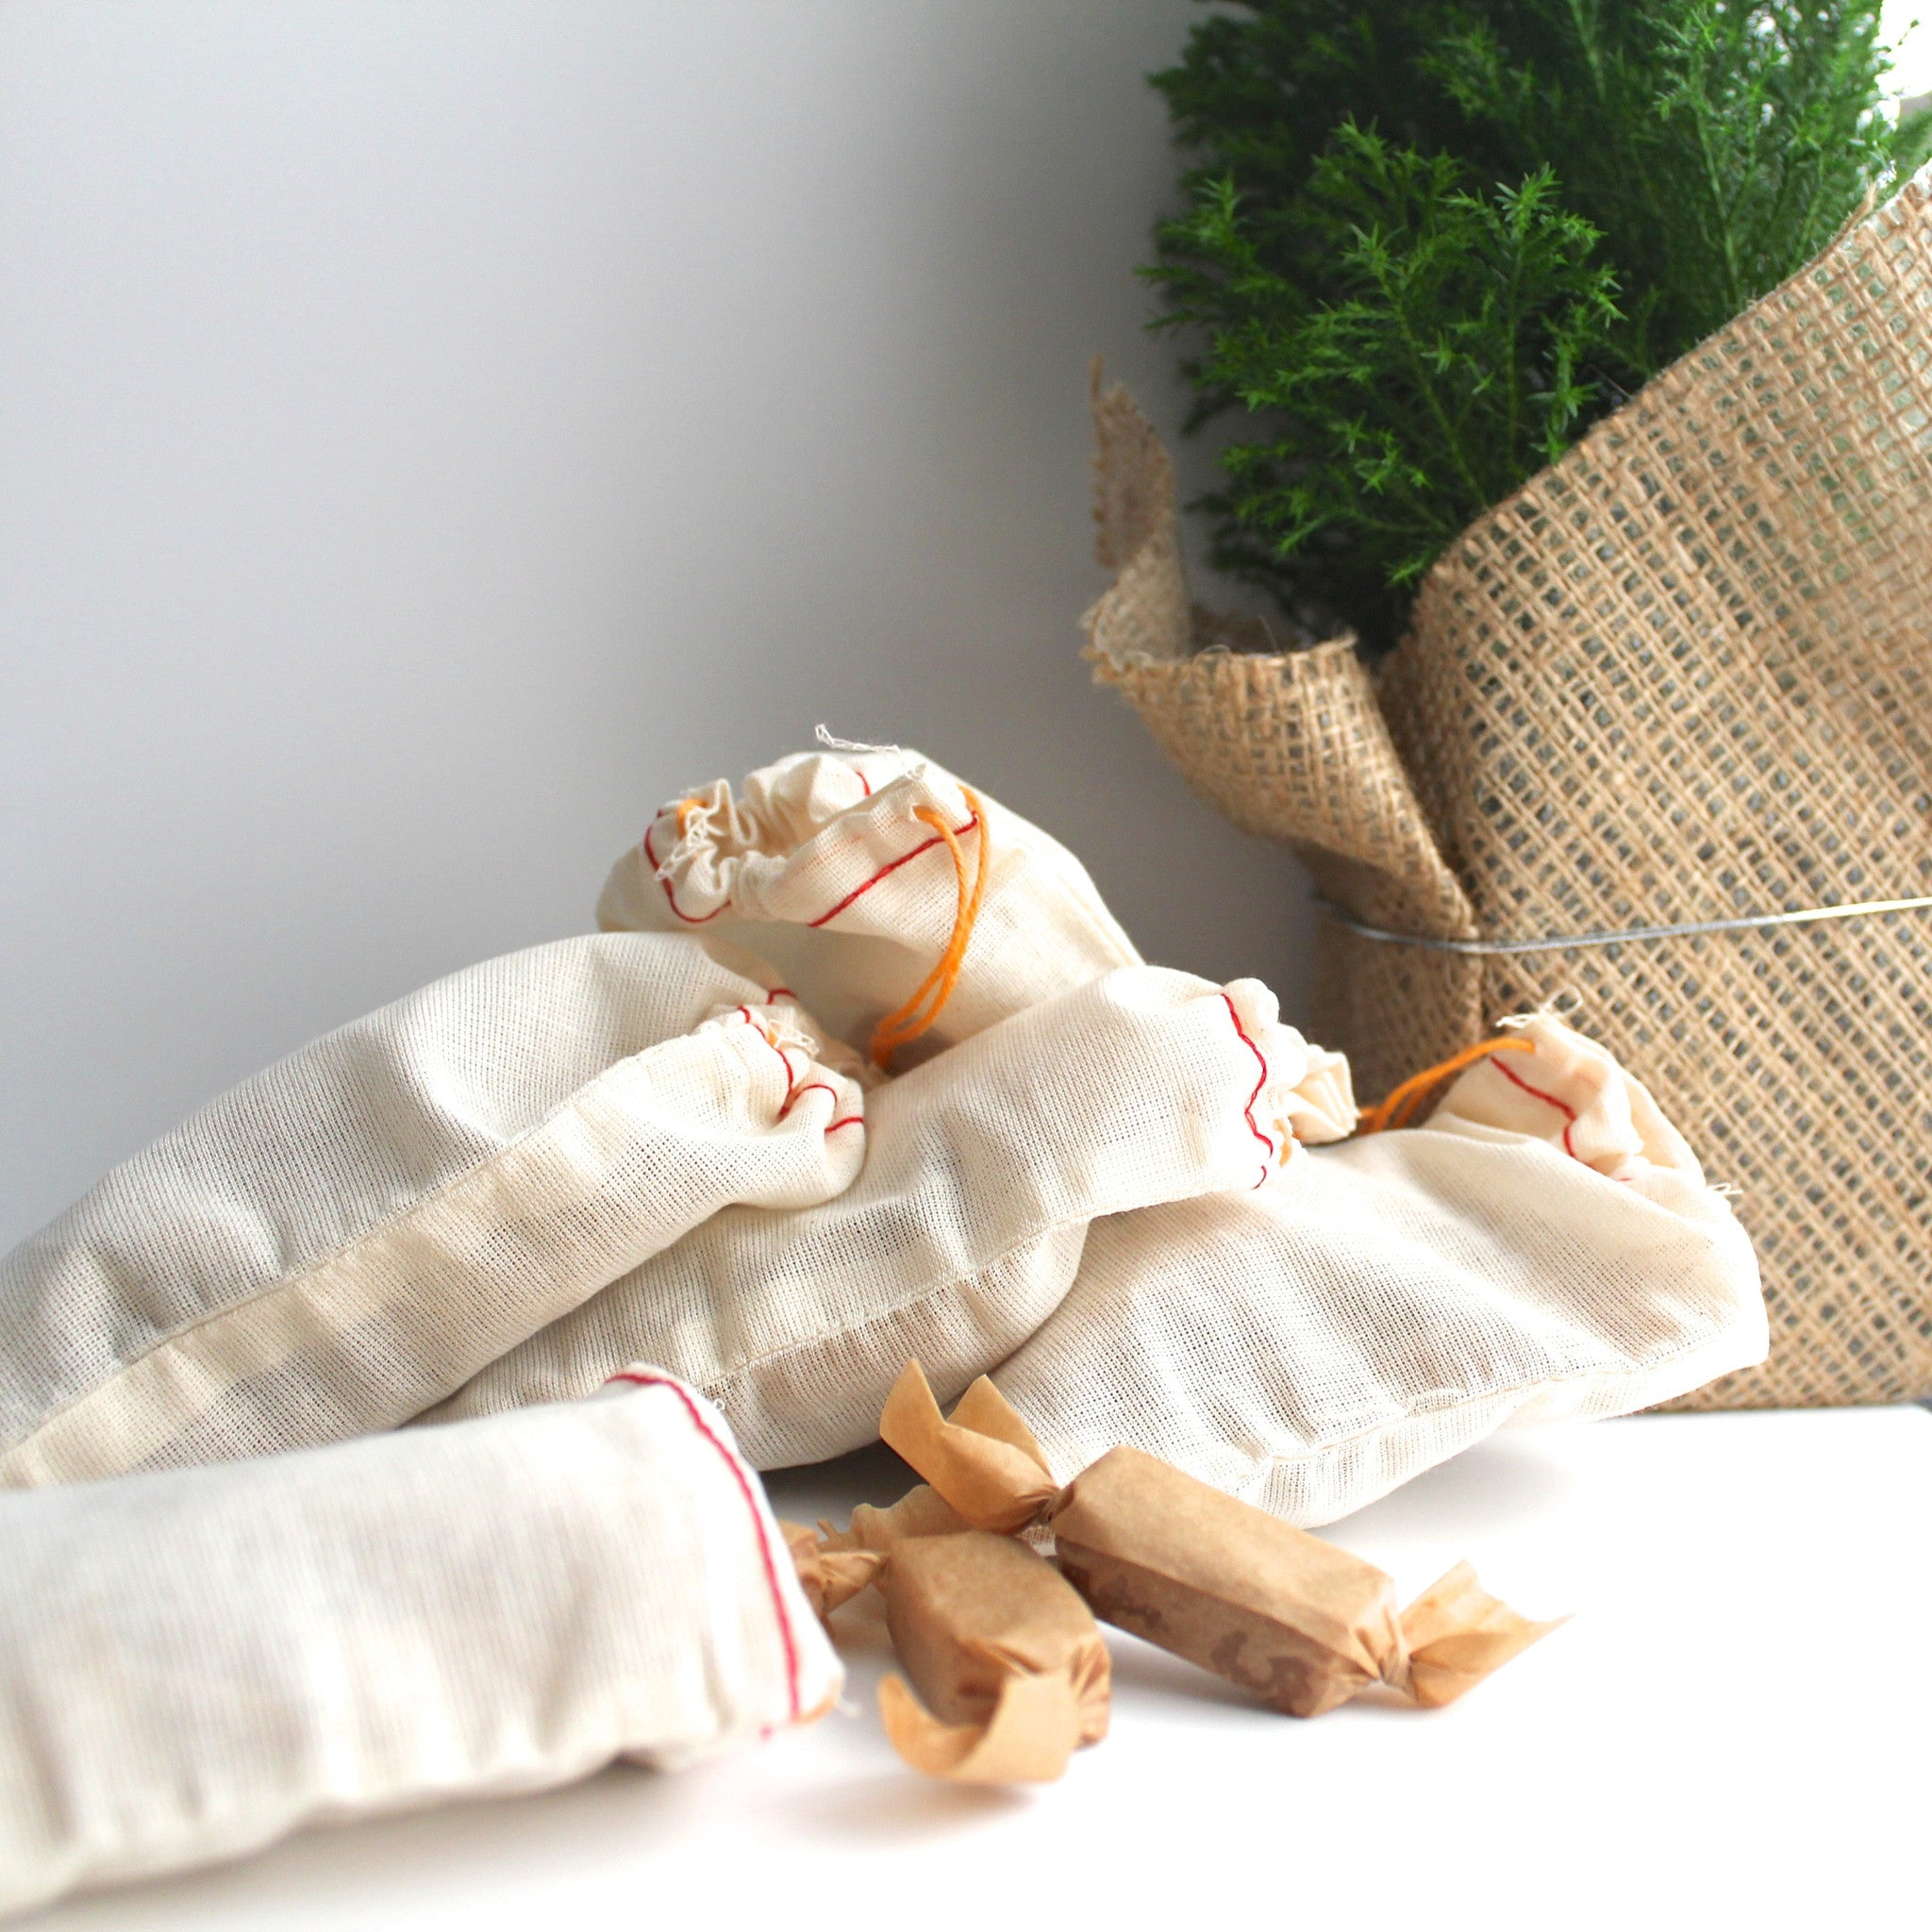 Stocking Stuffers / Fleur de Sel Salted Caramels / Muslin bag / {set of 5} 3oz pkgs